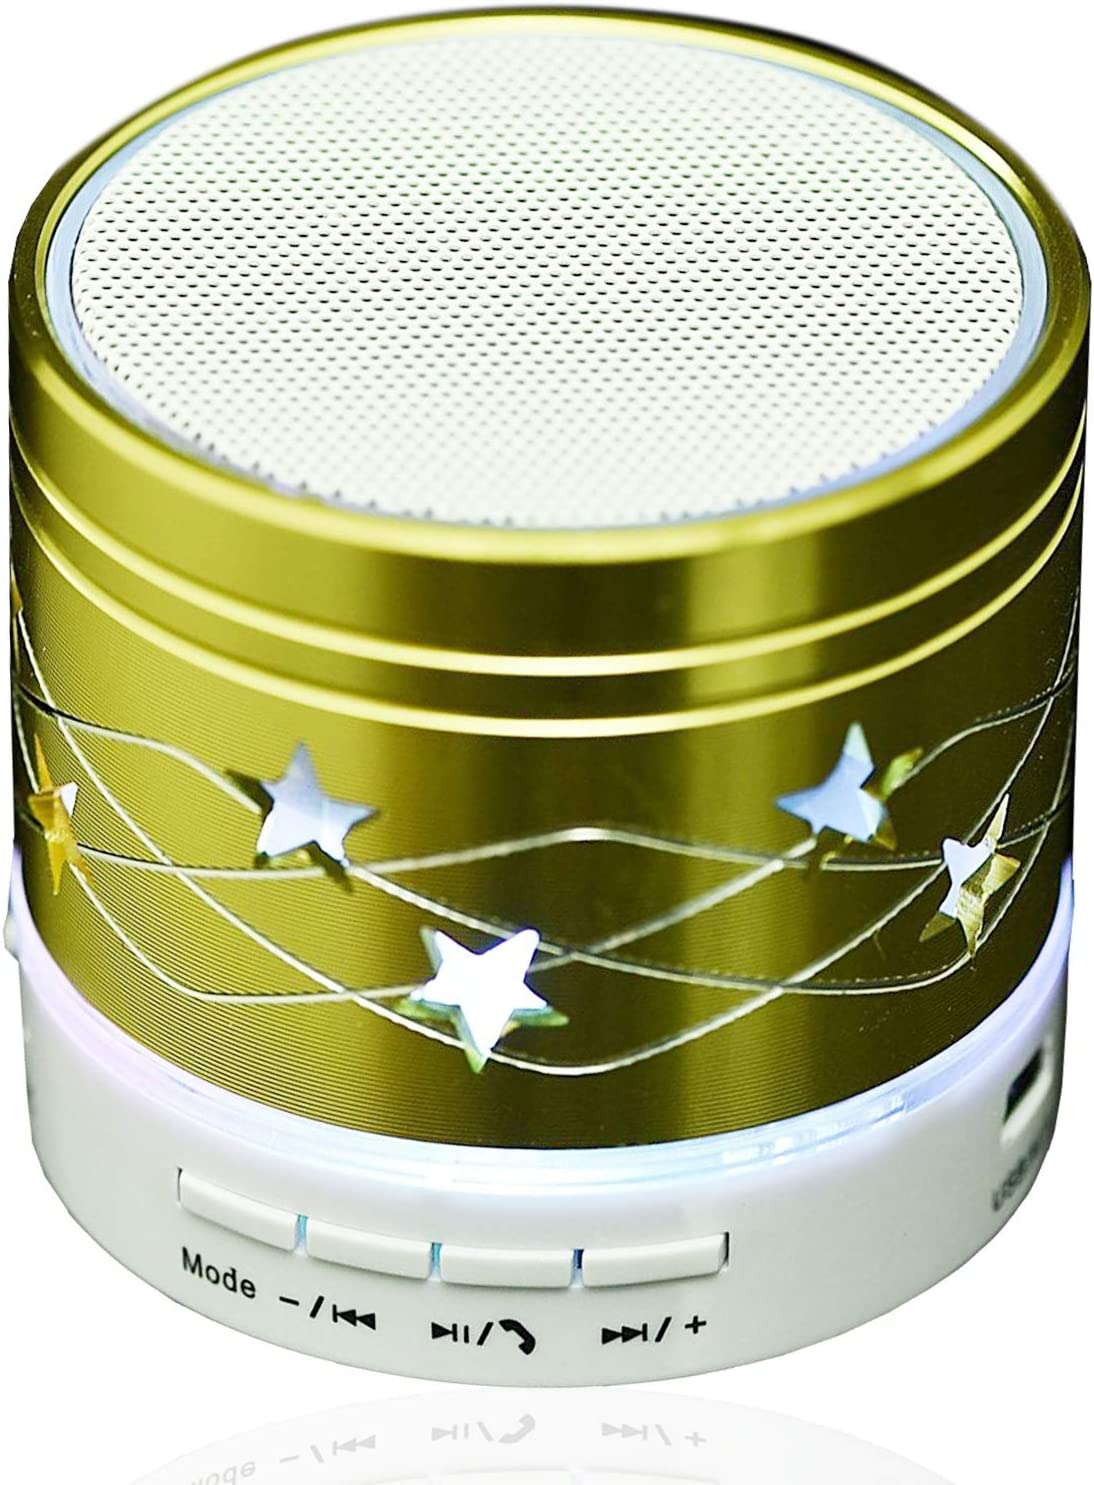 Portable Bluetooth Speaker Wireless Speaker Led Night Light Stereo Speaker Handsfree Call Music Player with Microphone TF Card Slot Compatible iOS Android Samsung S8 S9 iPhone Lg Laptops Tablets Pc